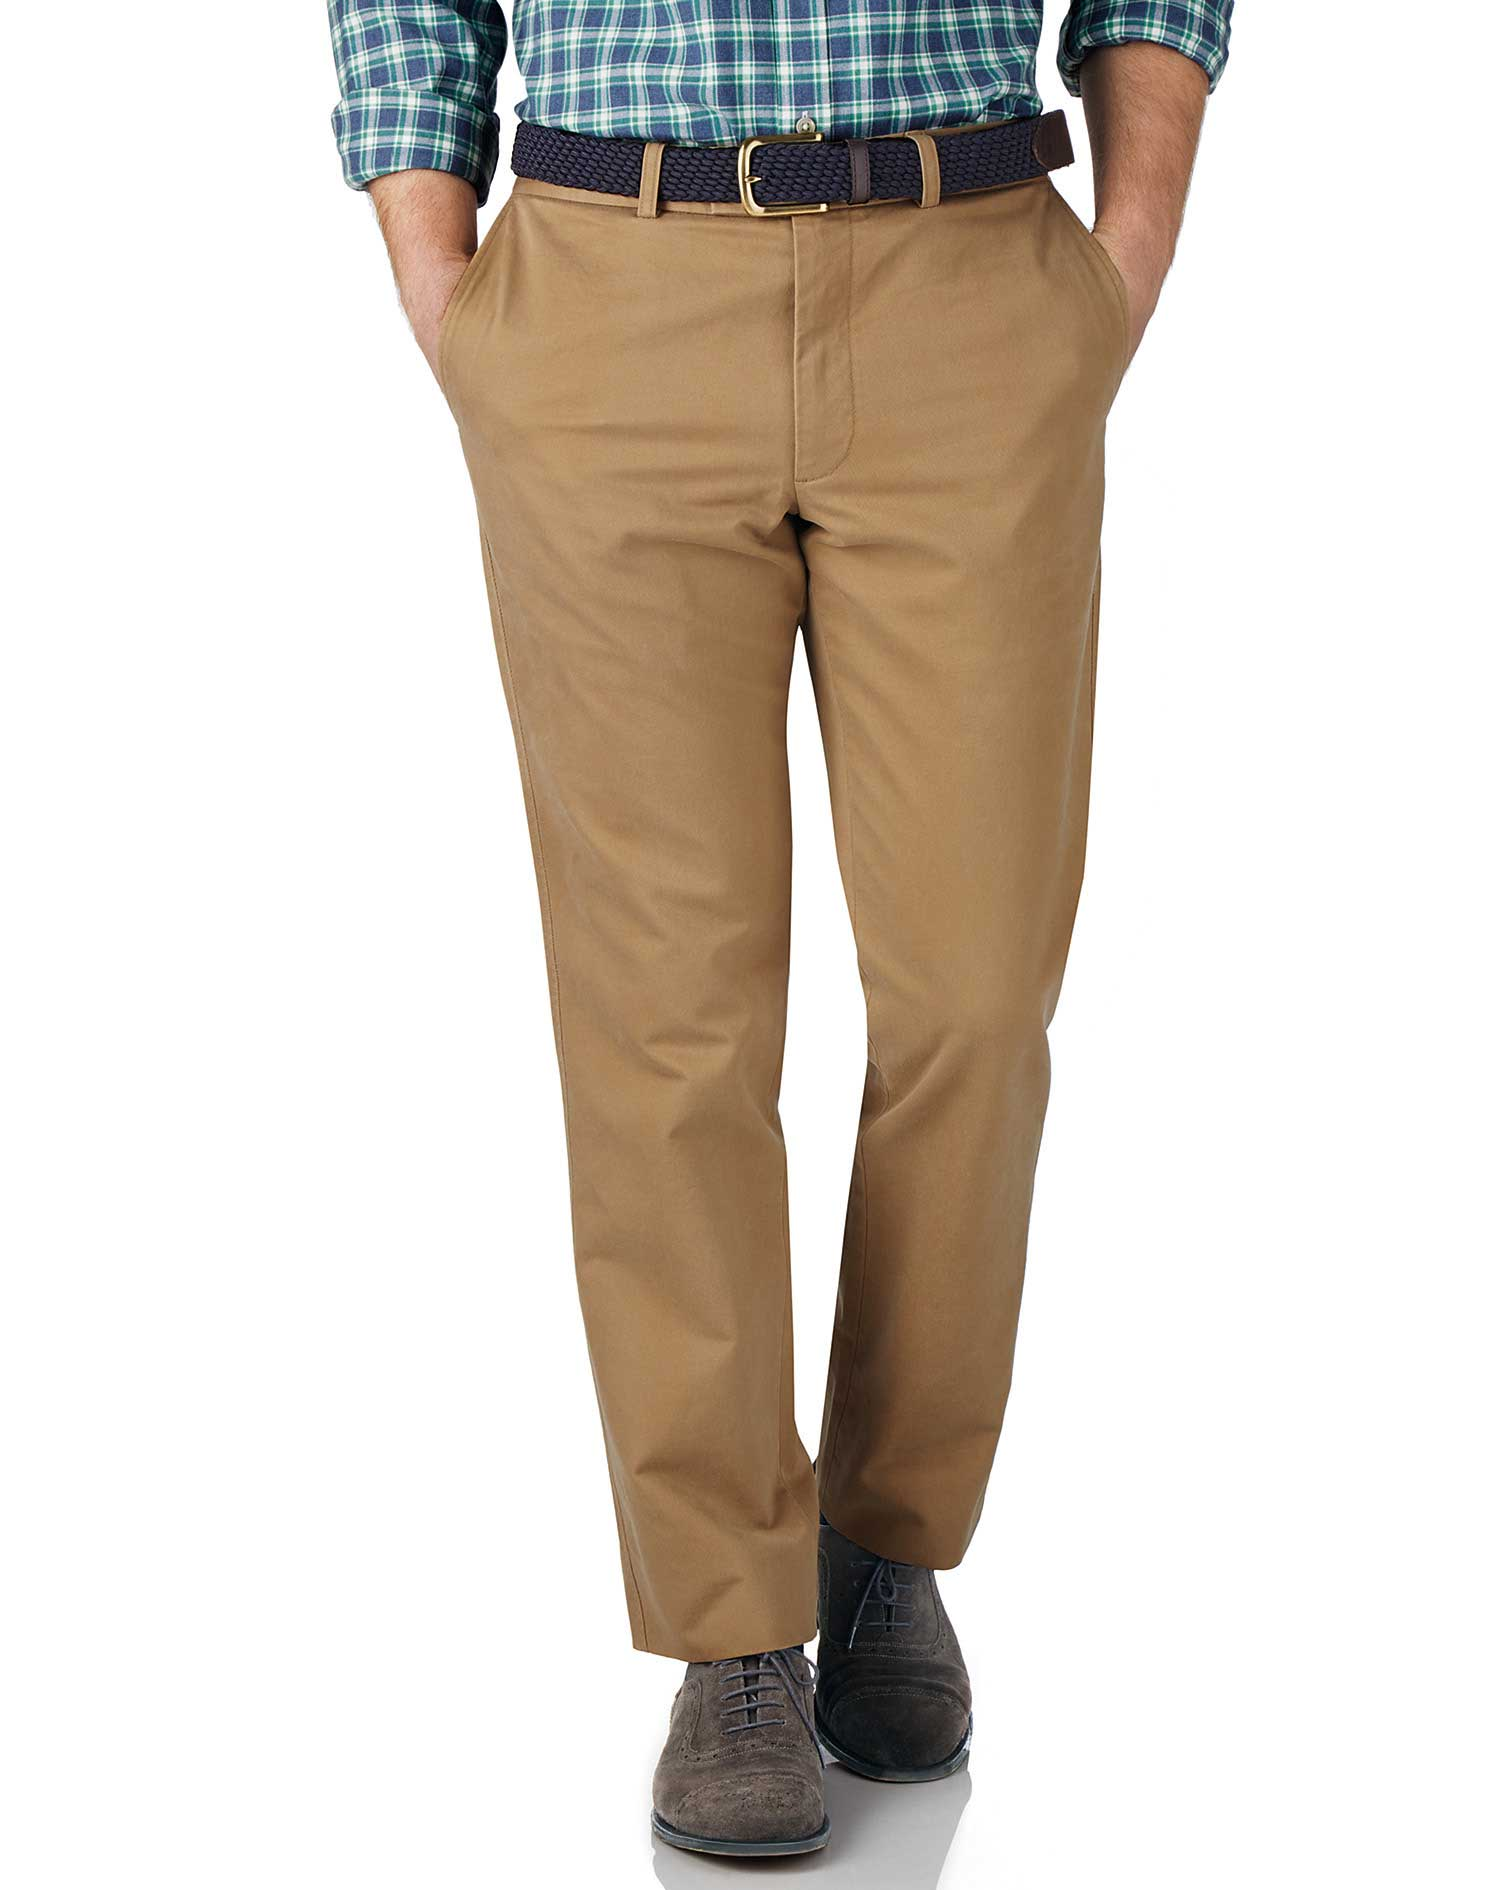 Tan Slim Fit Flat Front Weekend Cotton Chino Trousers Size W34 L32 by Charles Tyrwhitt